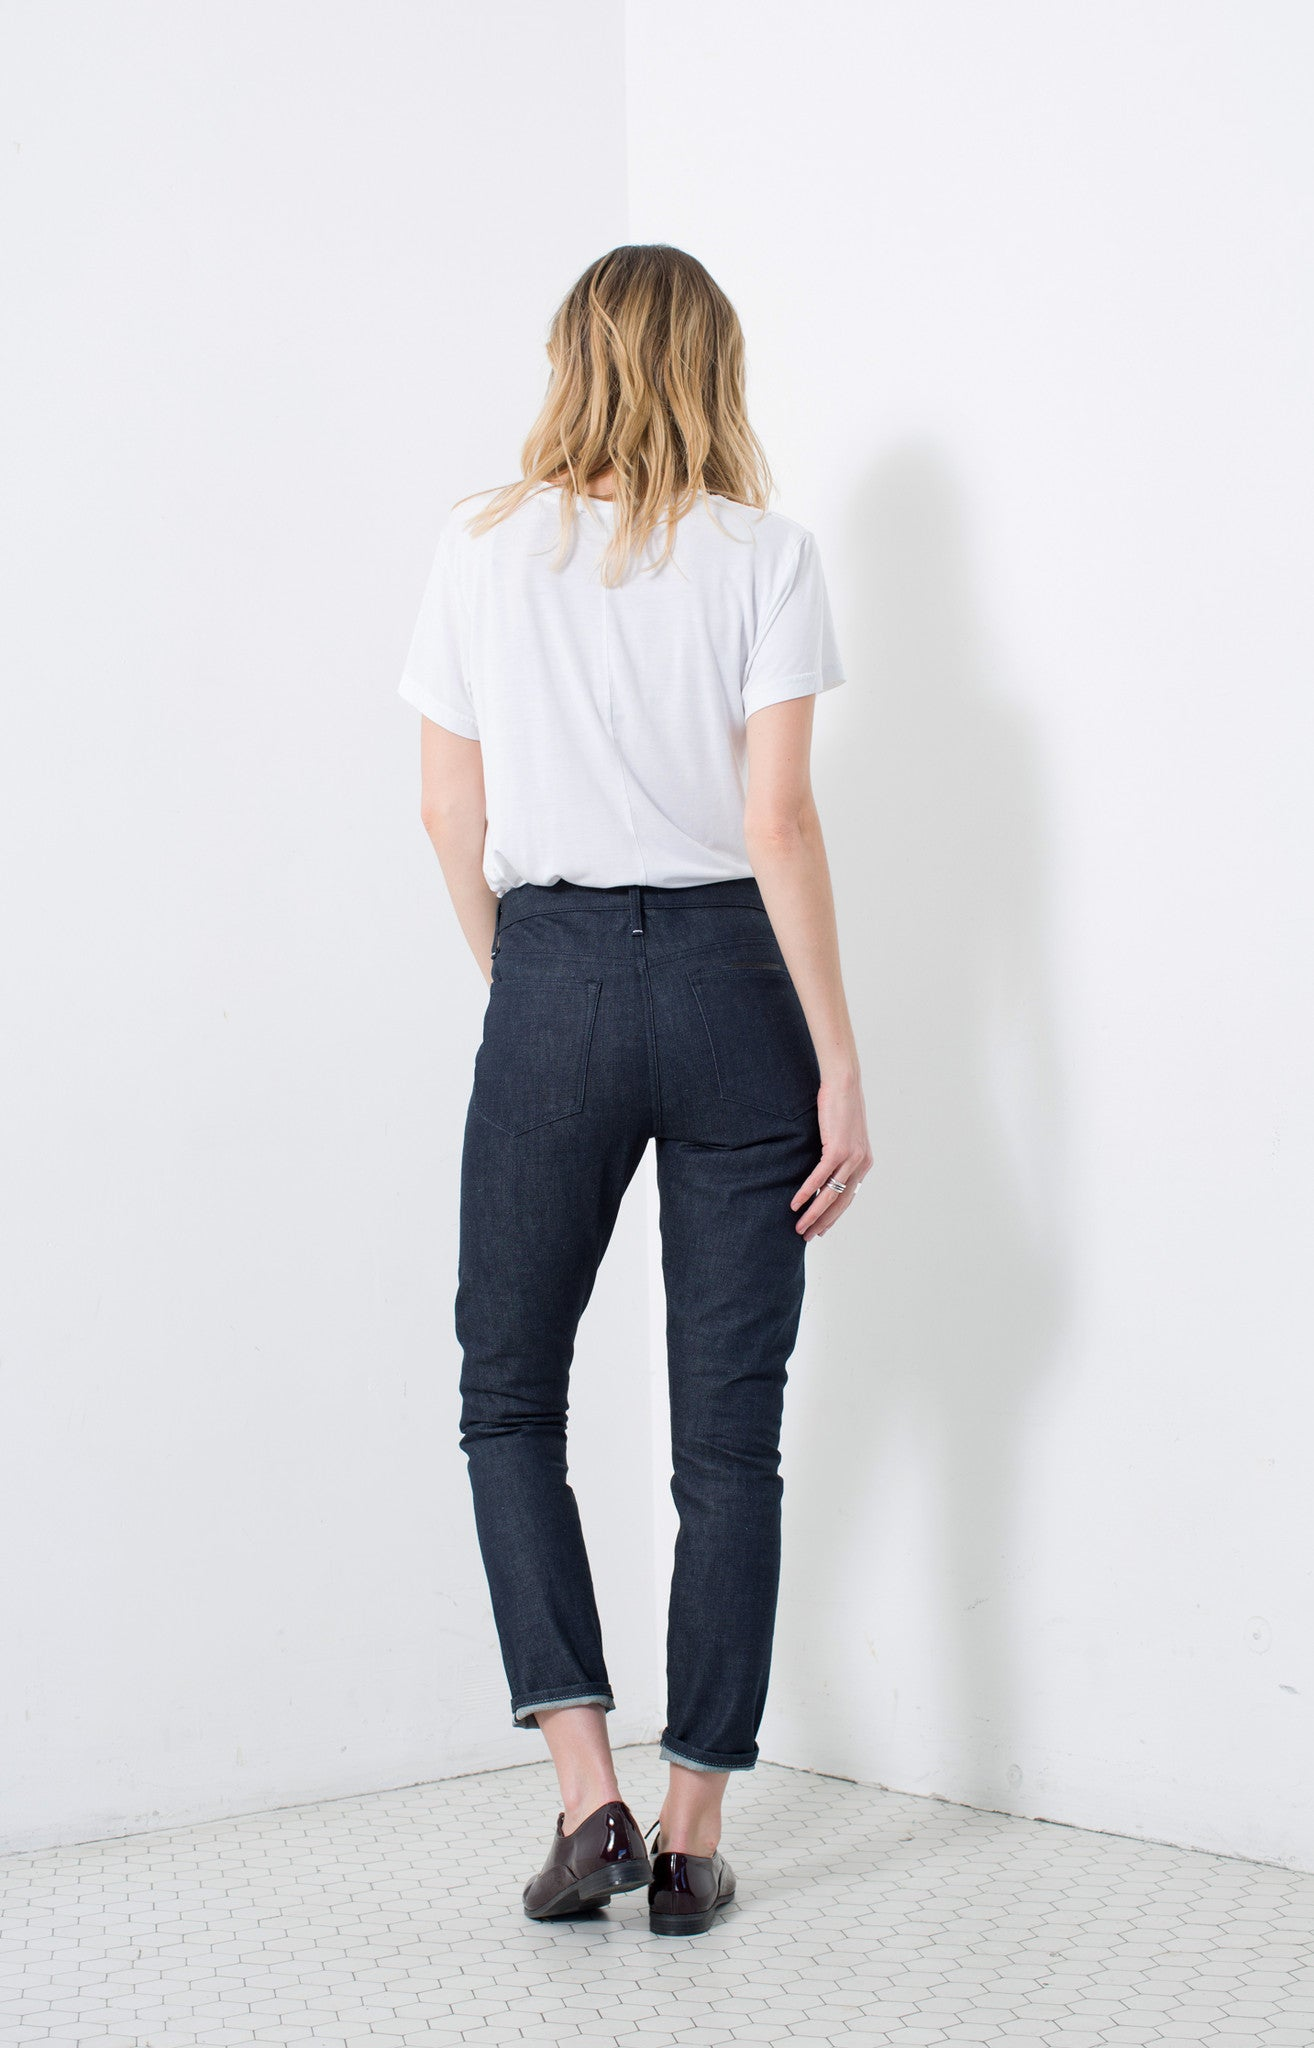 HIGH RISE SLIM in RAW | MADE TO ORDER